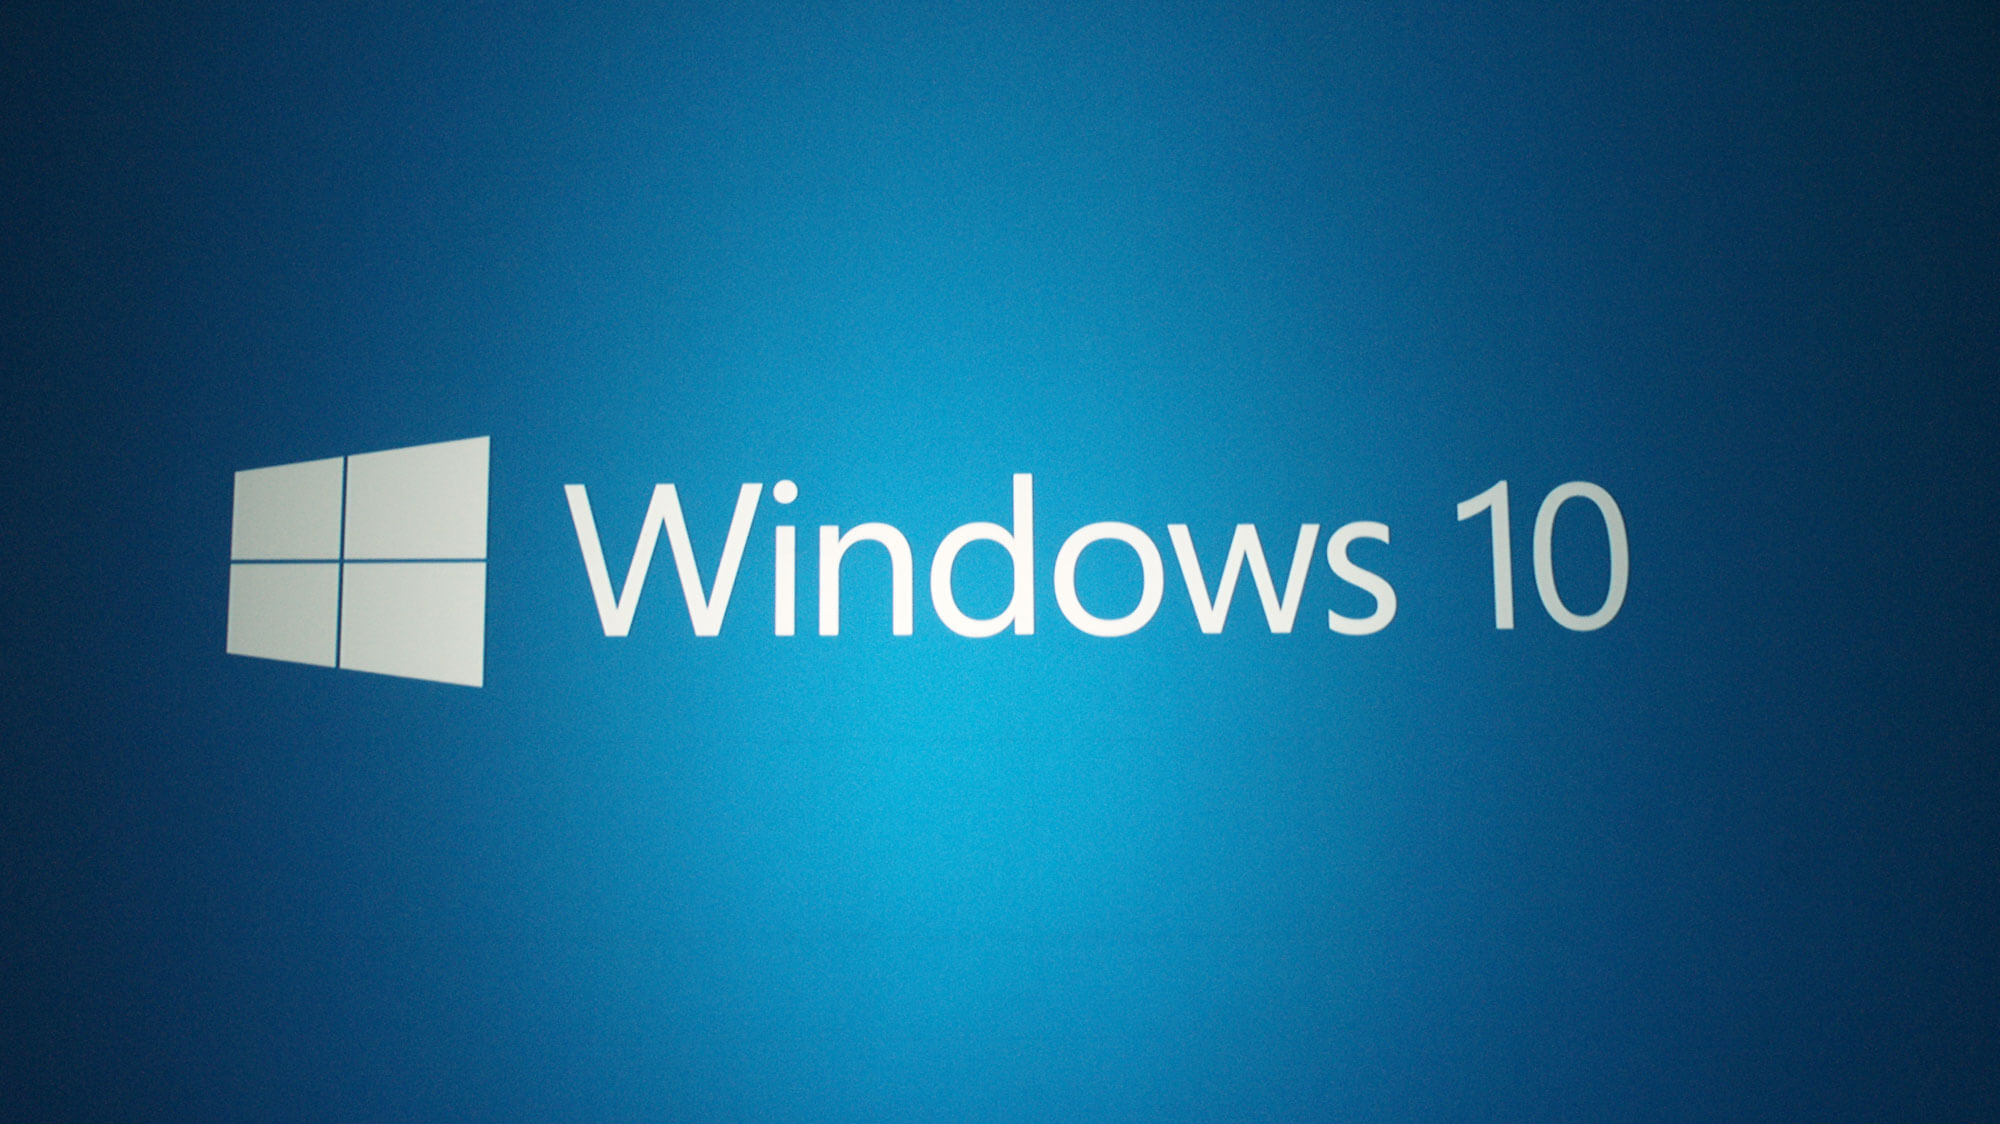 Windows 10 Eindruck, Microsoft Windows 10, Microsoft Betriebssysteme, Microsoft 10, Windows 10, Microsoft Windows 10 Update, Windows Betriebssysteme, Windows 10 Test, Windows 10 Erfahrungsberichte, Windows 10 Testberichte, Windows 10 Erfahrungen, Windows 10, Windows 10 Installieren, Windows 10 Installation, Windows 10 technische Daten, Windows 10 Voraussetzungen, Windows 7, Windows 8, Windows 7 Update, Windows 7 Upgrade, Windows 8 Update, Windows 8 Upgrade, Vorteile Windows 10, Nachteile Windows 10, Windows 01, Windows 10 Technical Preview, Windows 10 Demo, Windows 10 Service Pack, Windows 10 Treiber, Windows 10 Programme, Windows 10 Startmenü, Windows 10 Desktop, Windows Hintergrund, Windows 10 Hintergrundbilder, Windows 10 Overlay, Windows 10 Direct X 12, Direct X12, Direkt X12, DirectX12, Windows 10 Arbeitsspeicher, Windows 10 Positiv, Windows 10 Negativ, Windows 10 Nvidia, Windows 10 Home Version, Windows 10 Professionell, Neue Funktionen Windows 10, Windows 10 Funktionen, Windows 10 Release, Windows 10 Deutsch, Windows 10 Erscheinungsdatum, Windows 10 Preis, Windows 10 Download, Windows 10 Systemanforderungen, Windows 10 News, Windows 10 Infos, Windows 10 Informationen, Windows 10 Preview Version, Windows 10 Version, Windows 10 Neuigkeiten, Windows 10 Tempo-Test, Windows 10 Speed Test, Windows 10 64-bit, Windows 10 32-Bit, Windows 10 Hilfe, Microsoft Edge, Windows 10 Geräte, Windows 10 Wiki, Windows 10 Wikipedia, Windows 10 Lizenz, Windows 10 Lizens, Windows 10 Threshold, Windows 10 Datenschutz, Windows 10 Insider, Windows 10 Program, Windows 10 Lizenzierung, Wichtigste zu Windows 10, Wichtig Windows 10, Windows 10 Einstellungen, Windows 10 Settings, Windows 10 Rezension, Windows 10 Bericht, Windows